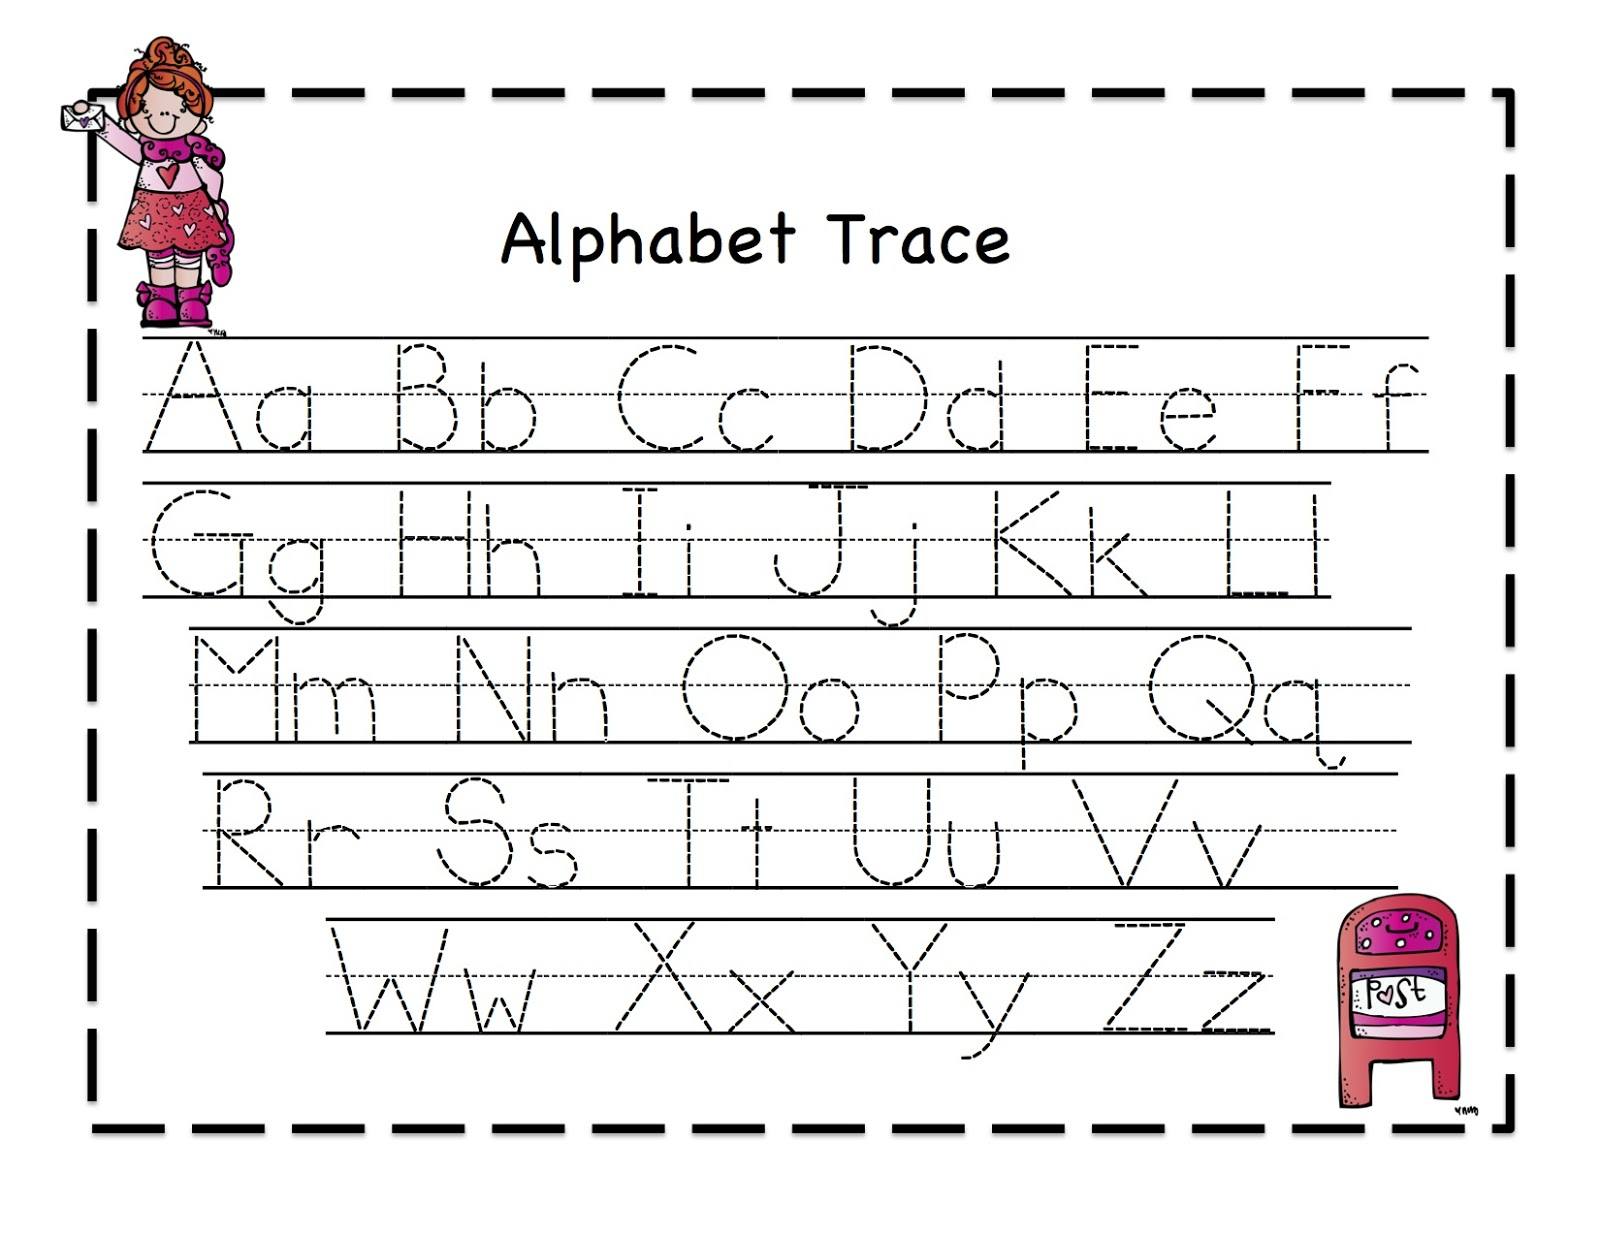 Worksheets Trace Alphabet tracing abc worksheets rringband trace worksheet workbook site